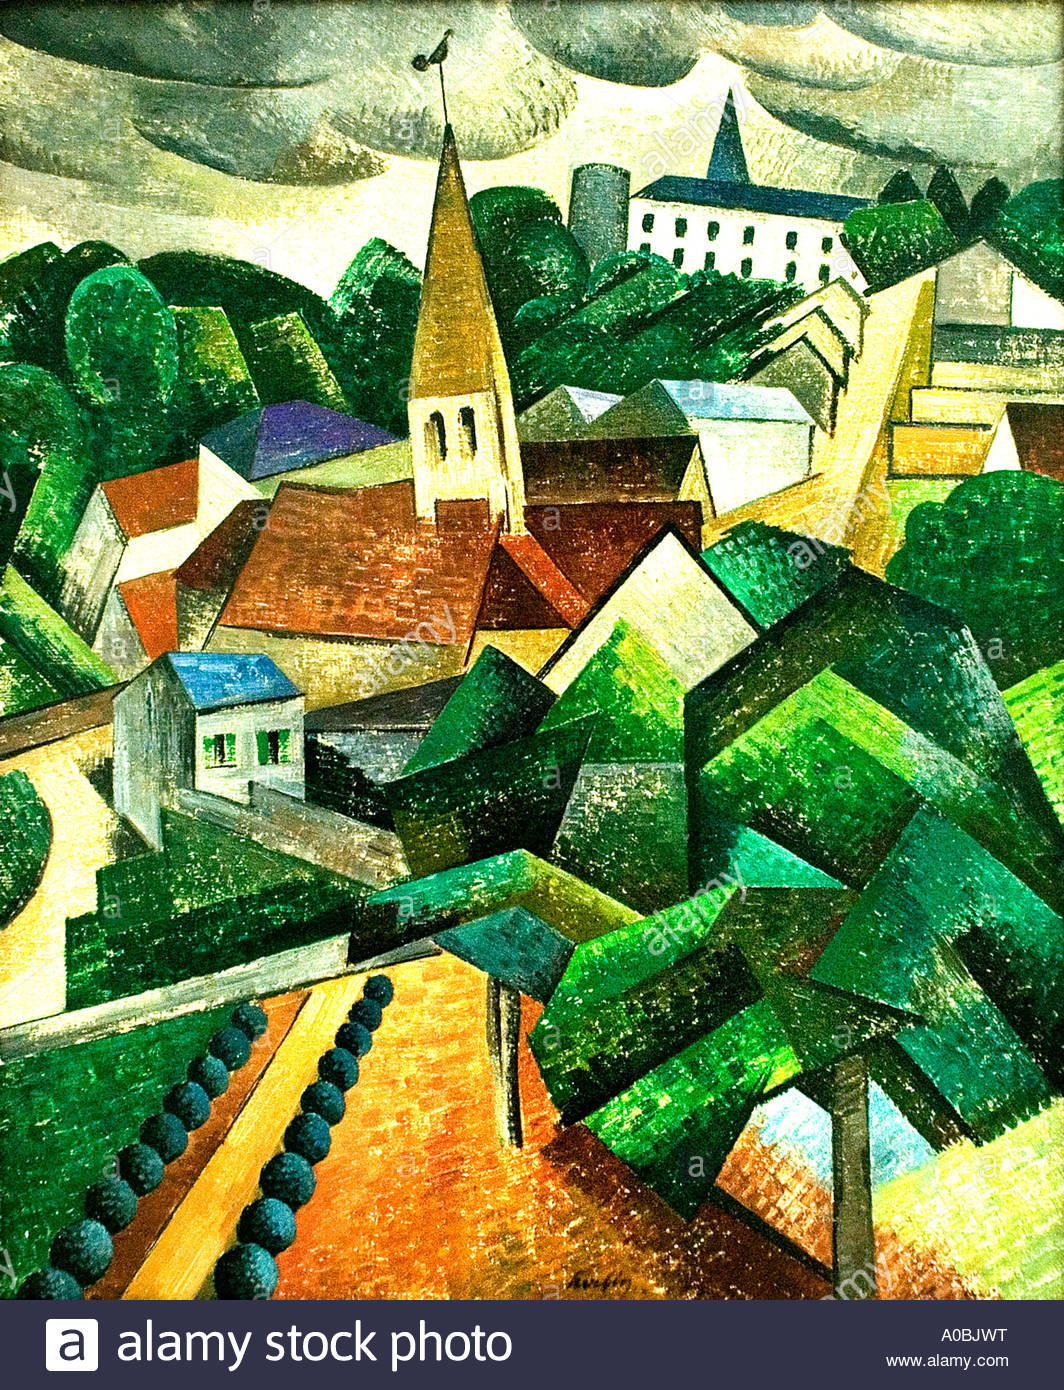 Paysage a Hadricourt 1911   by Auguste Herbin France French Painter - Stock Image